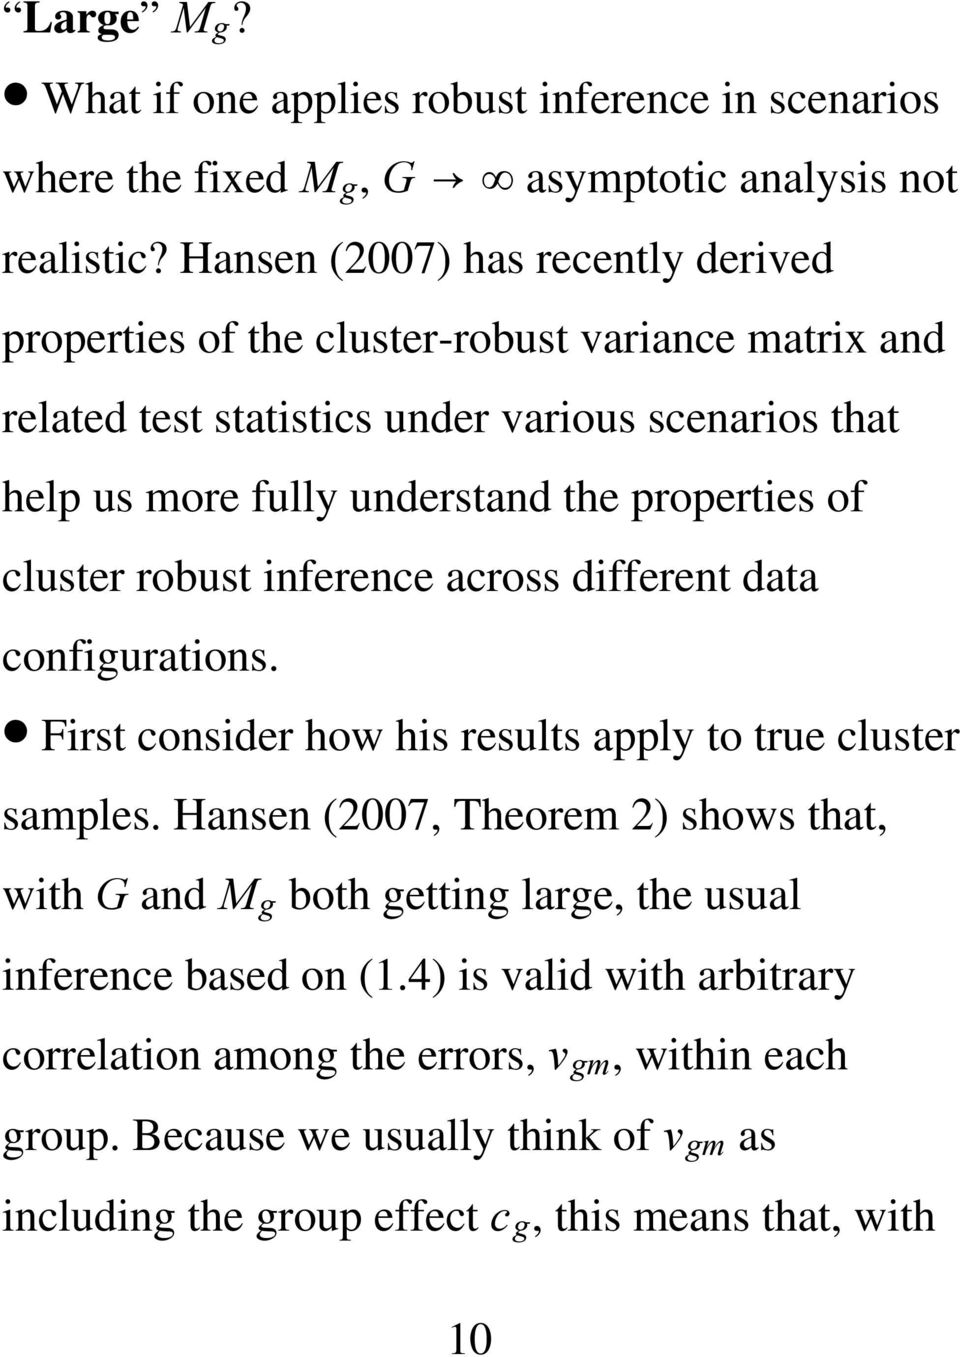 properties of cluster robust inference across different data configurations. First consider how his results apply to true cluster samples.